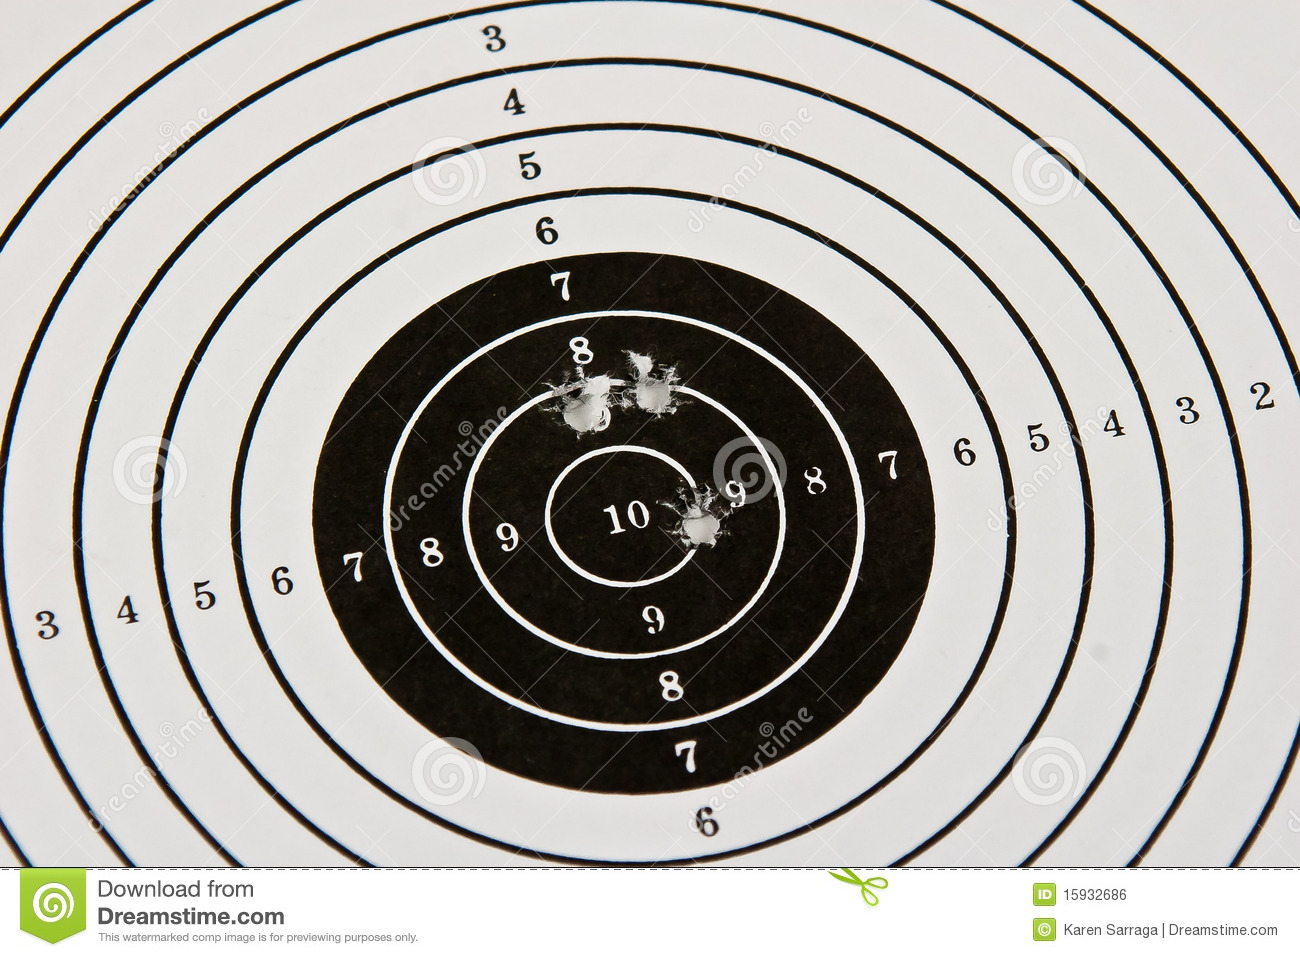 Bulls Eye Target With Bullet Holes Royalty Free Stock Image   Image